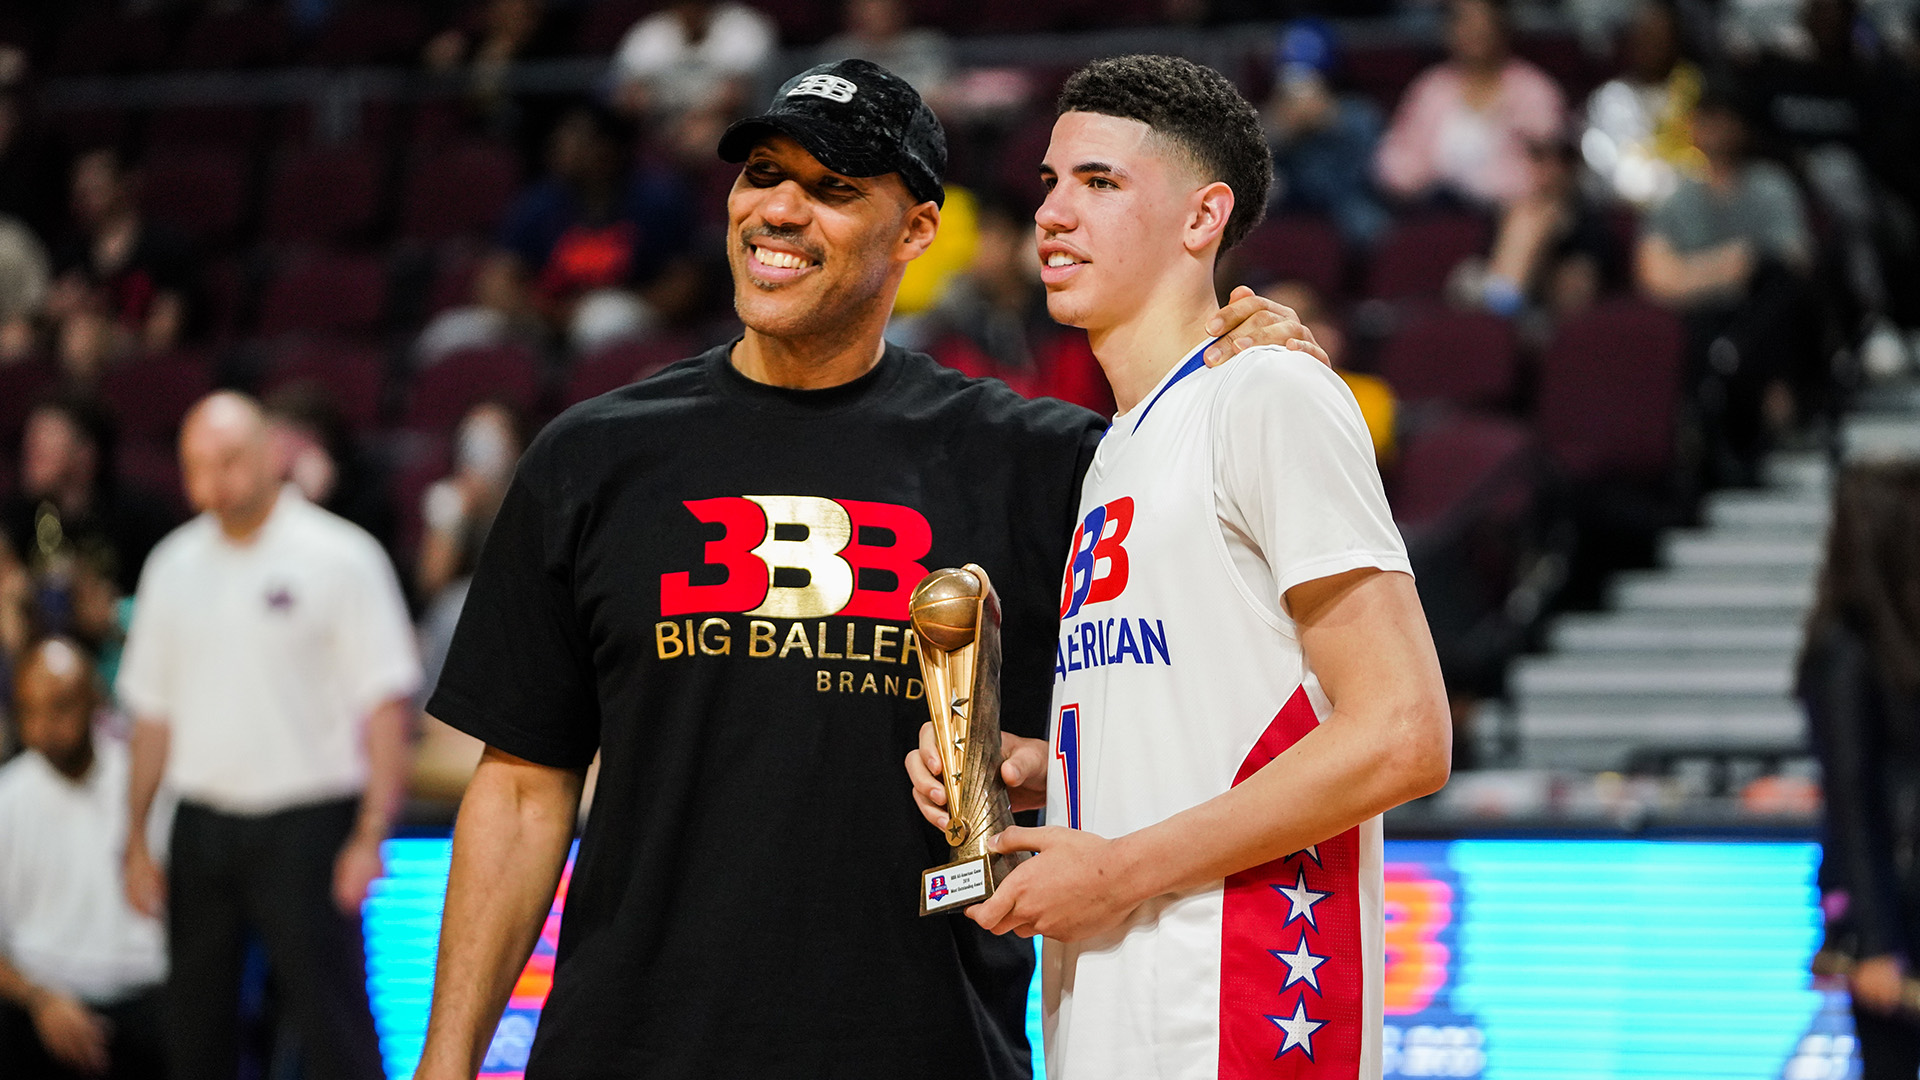 LaMelo Ball, standing next to his father LaVar, is a point guard option for the Bulls.